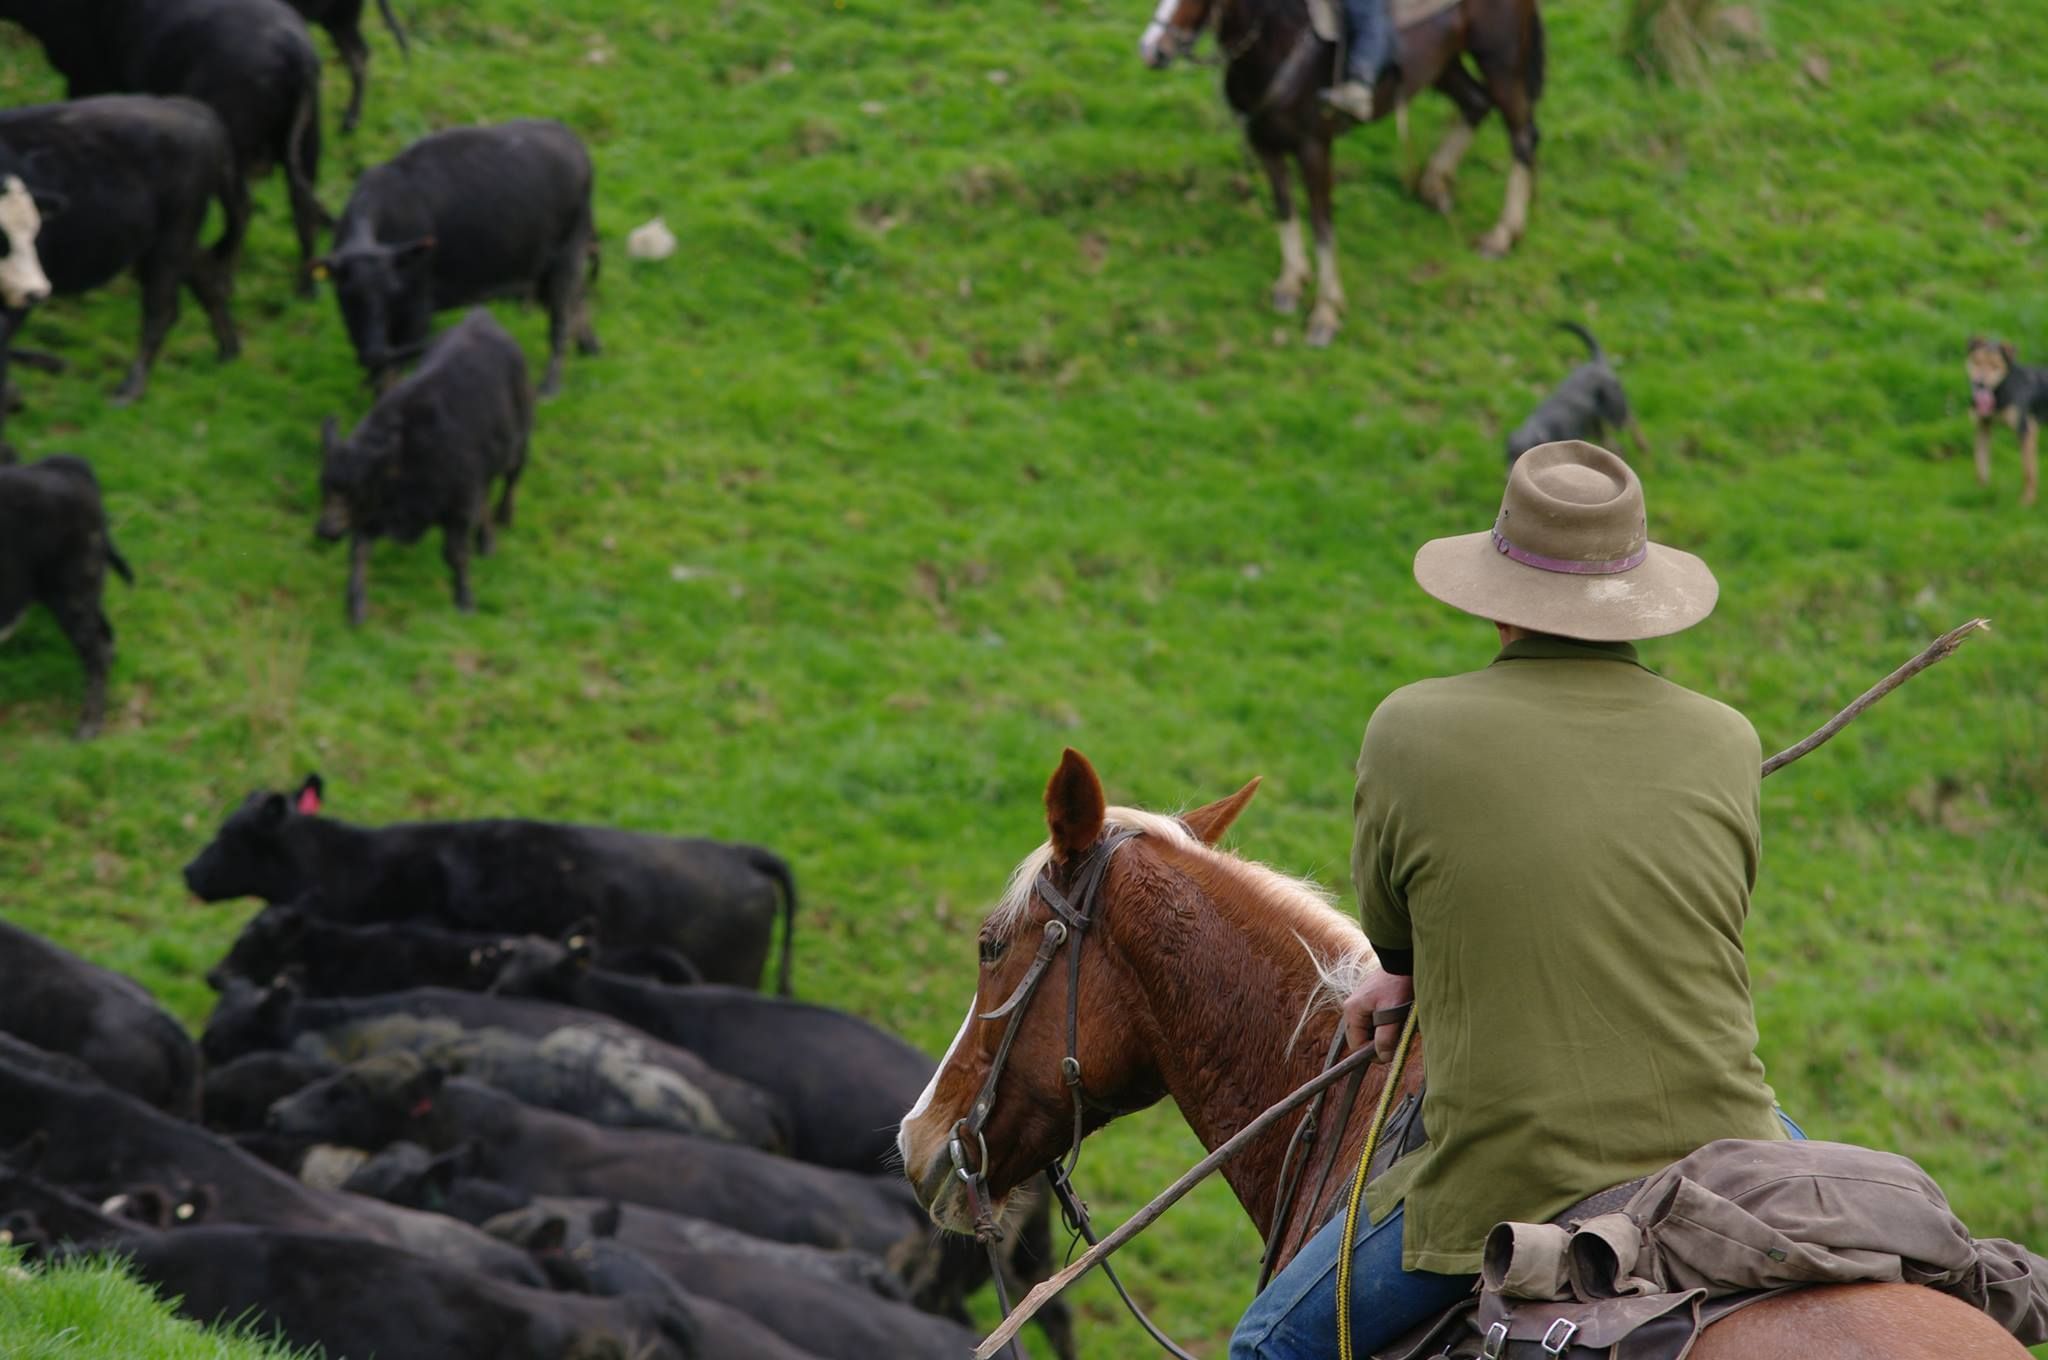 Shepherd watching cattle in Taumarunui